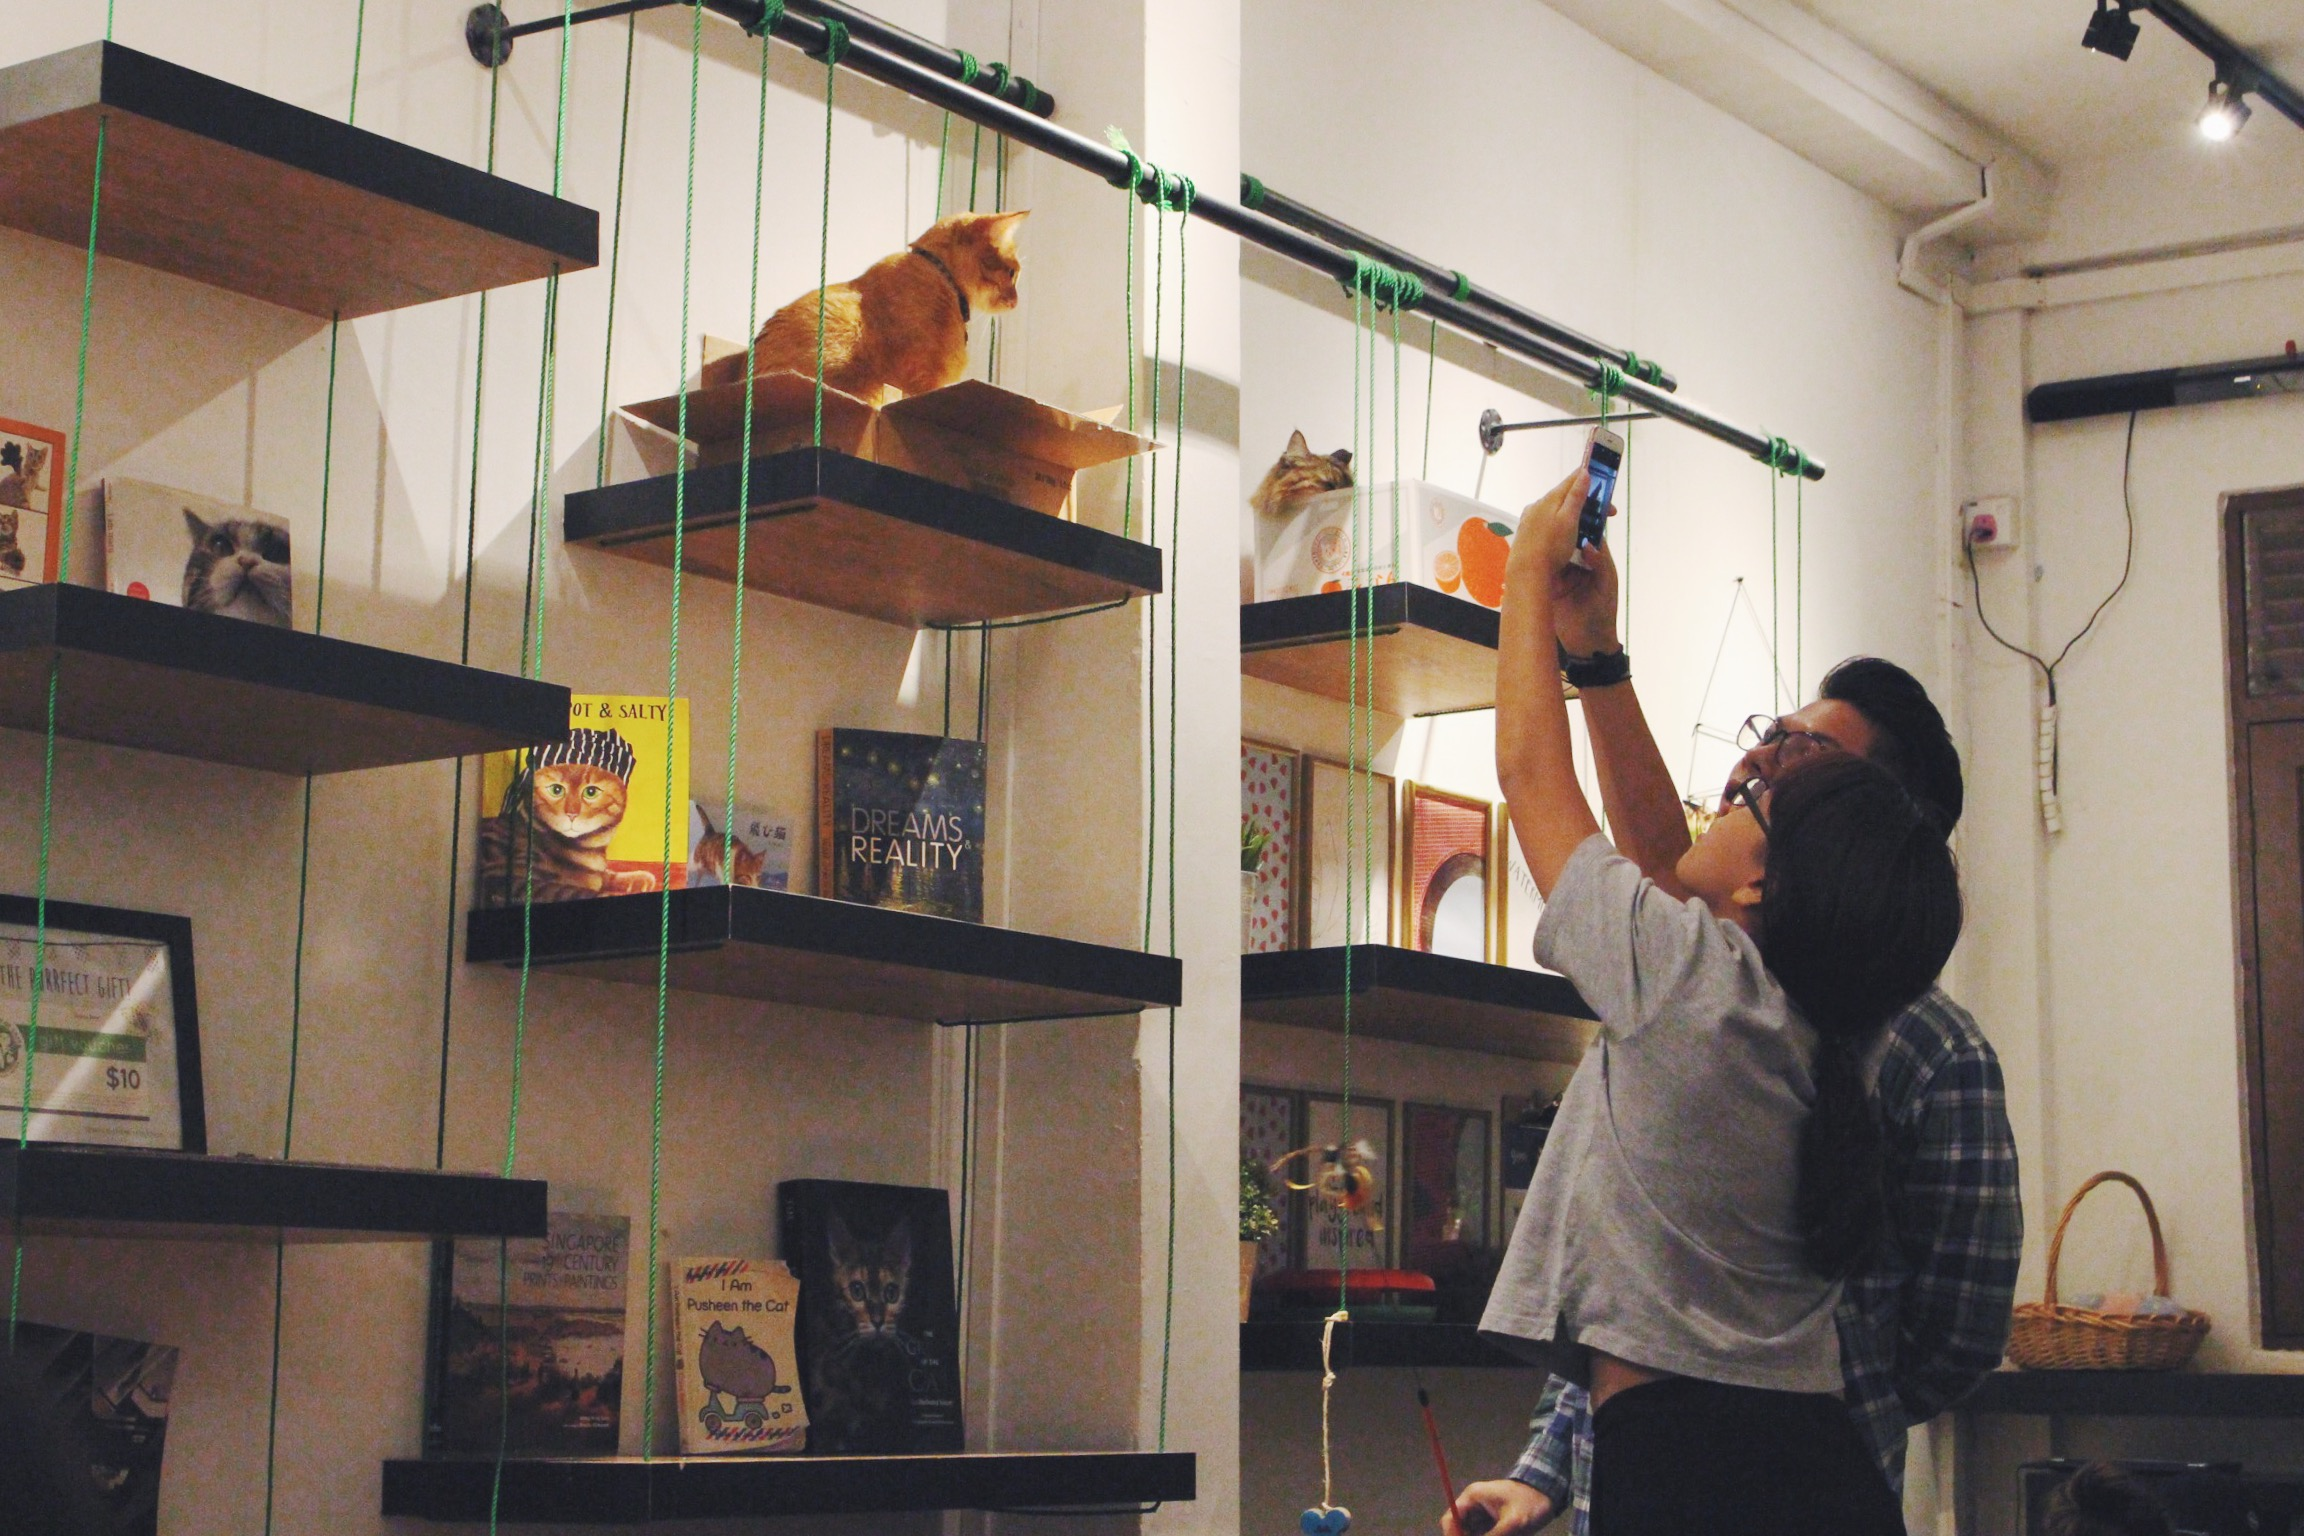 We all know how your photo galleries will look like after two hours at a cat cafe. Photo courtesy: Connected To India, overthemoosic